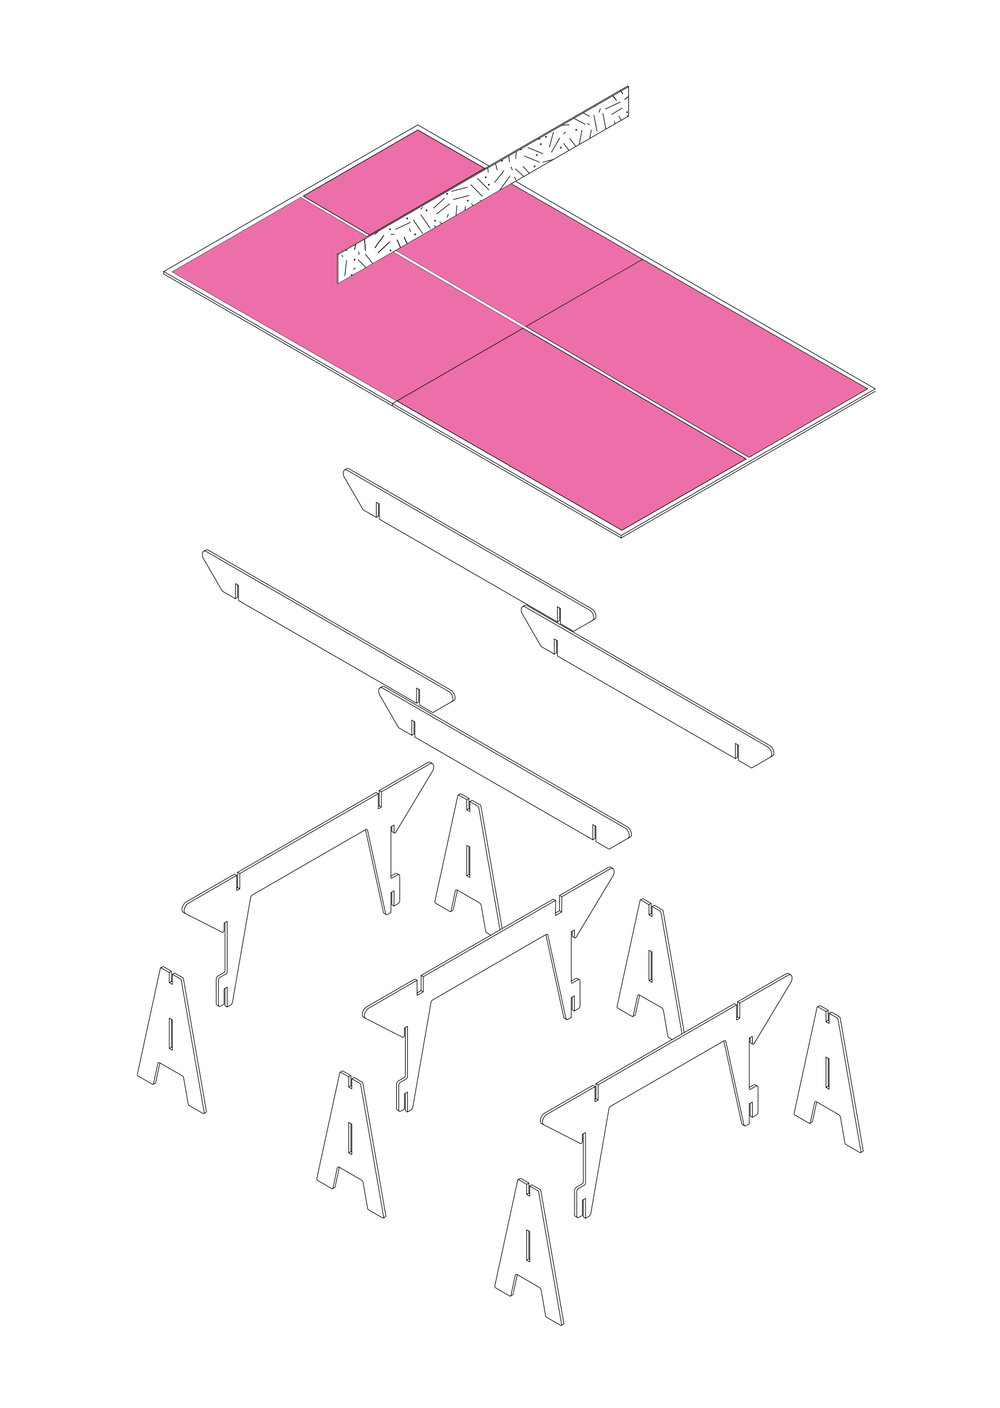 Diagram of the finalized table design